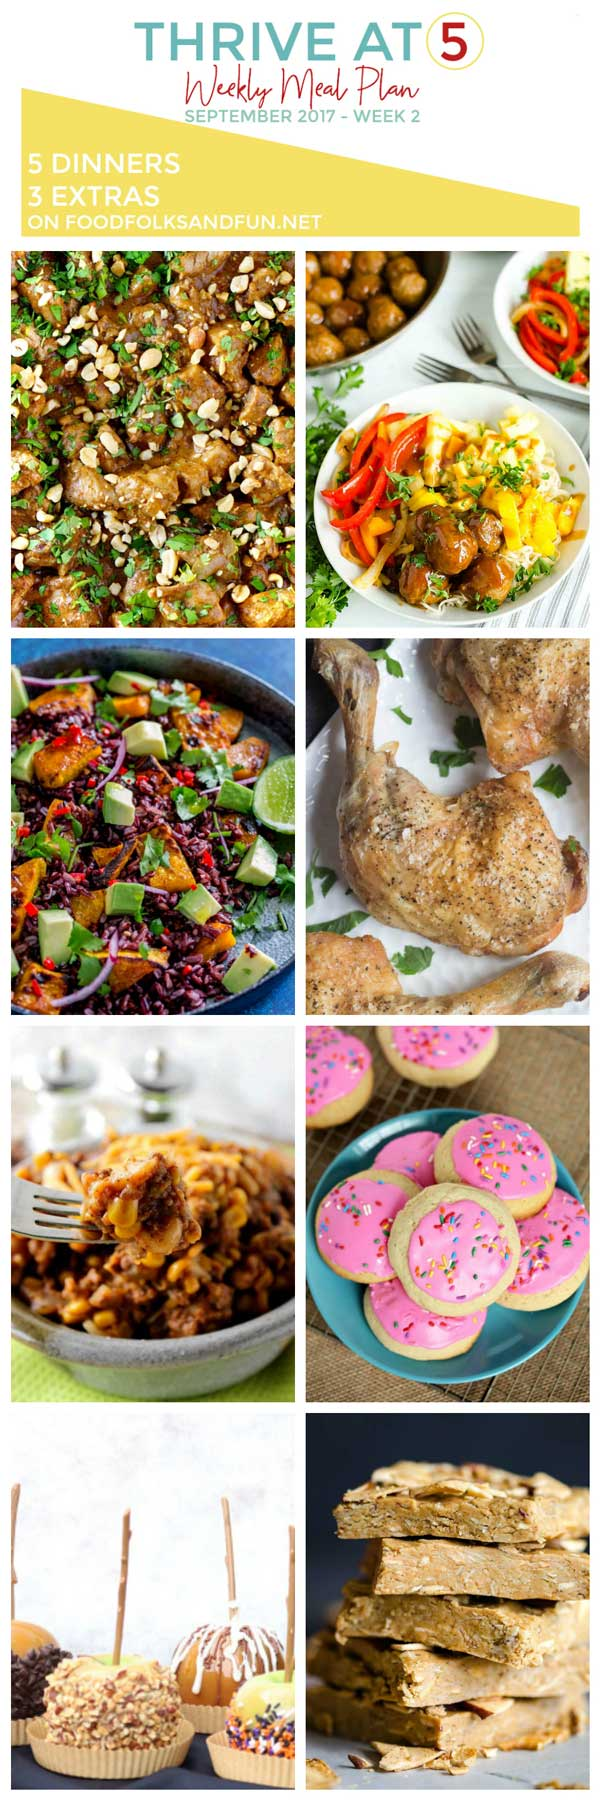 Weekly Meal Plan for September Week 2